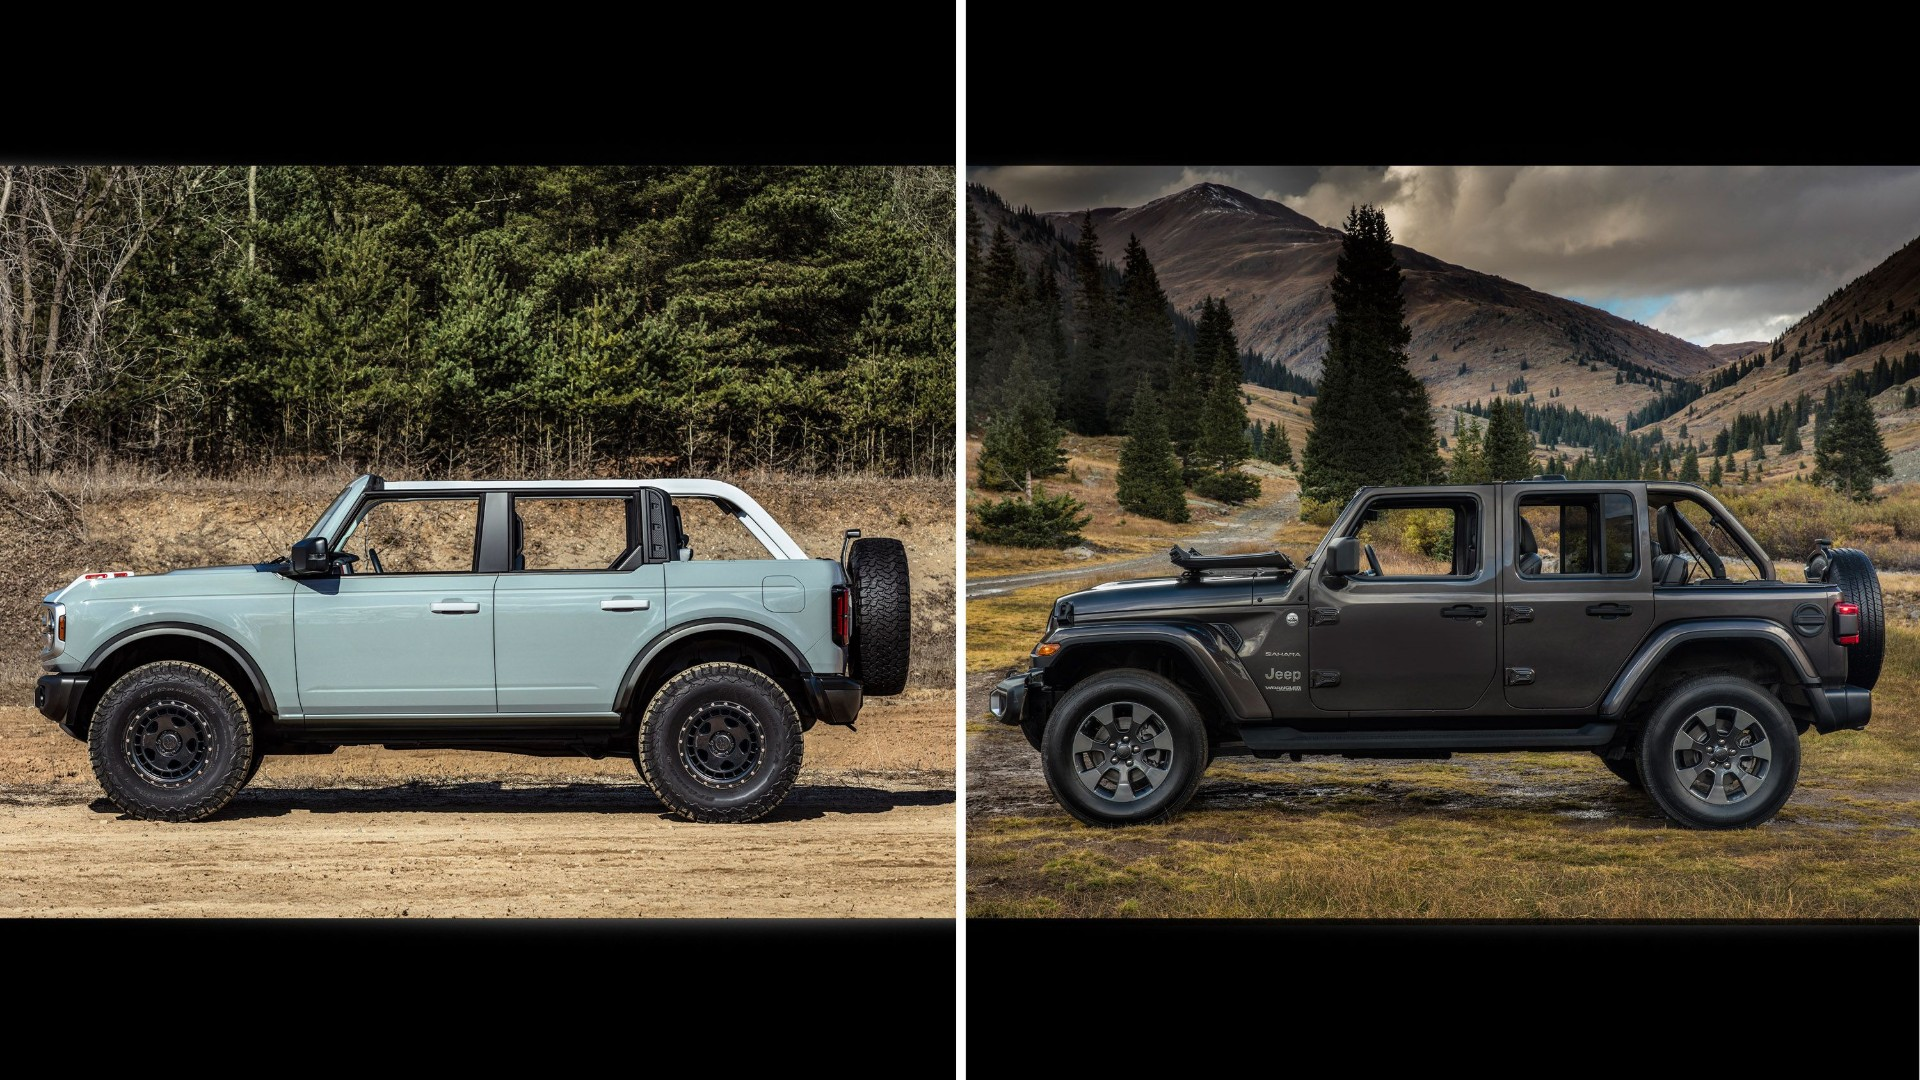 Ford Bronco VS Jeep Wrangler